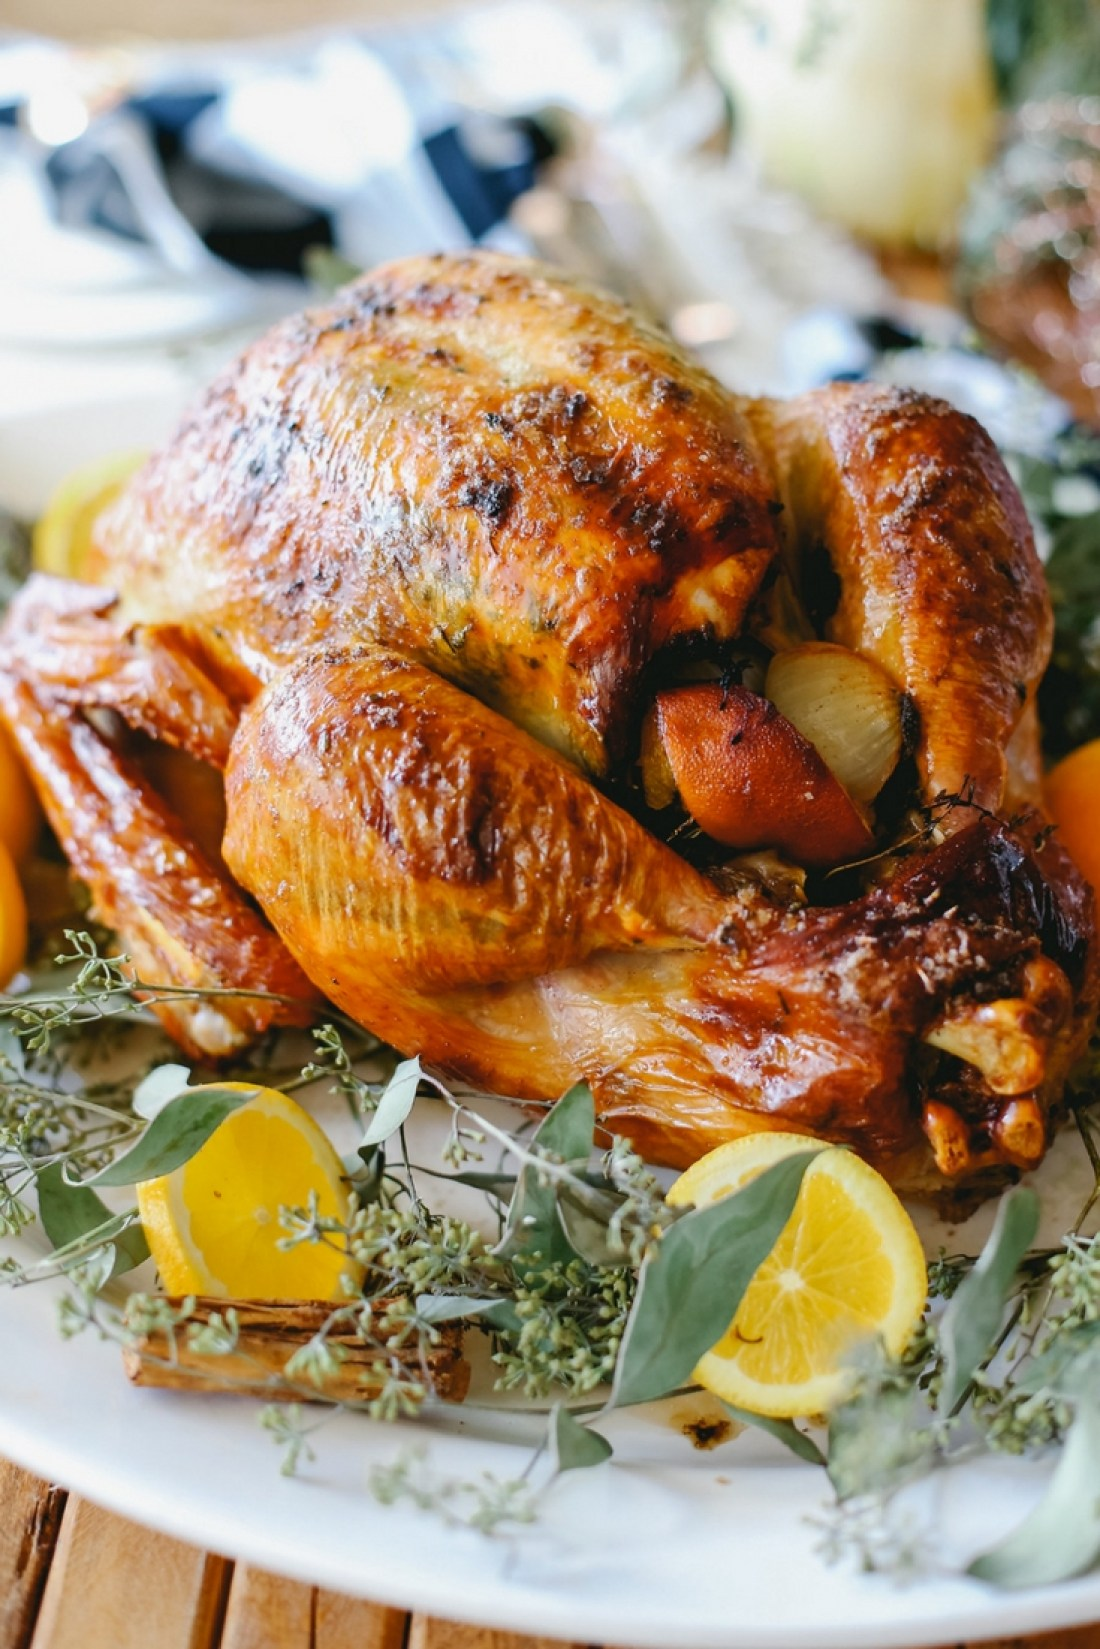 Turkey recipe: this Orange Spiced Turkey is moist, tender, delicious & the perfect centerpiece for your holiday meal! Easy to make & bursting with flavor.